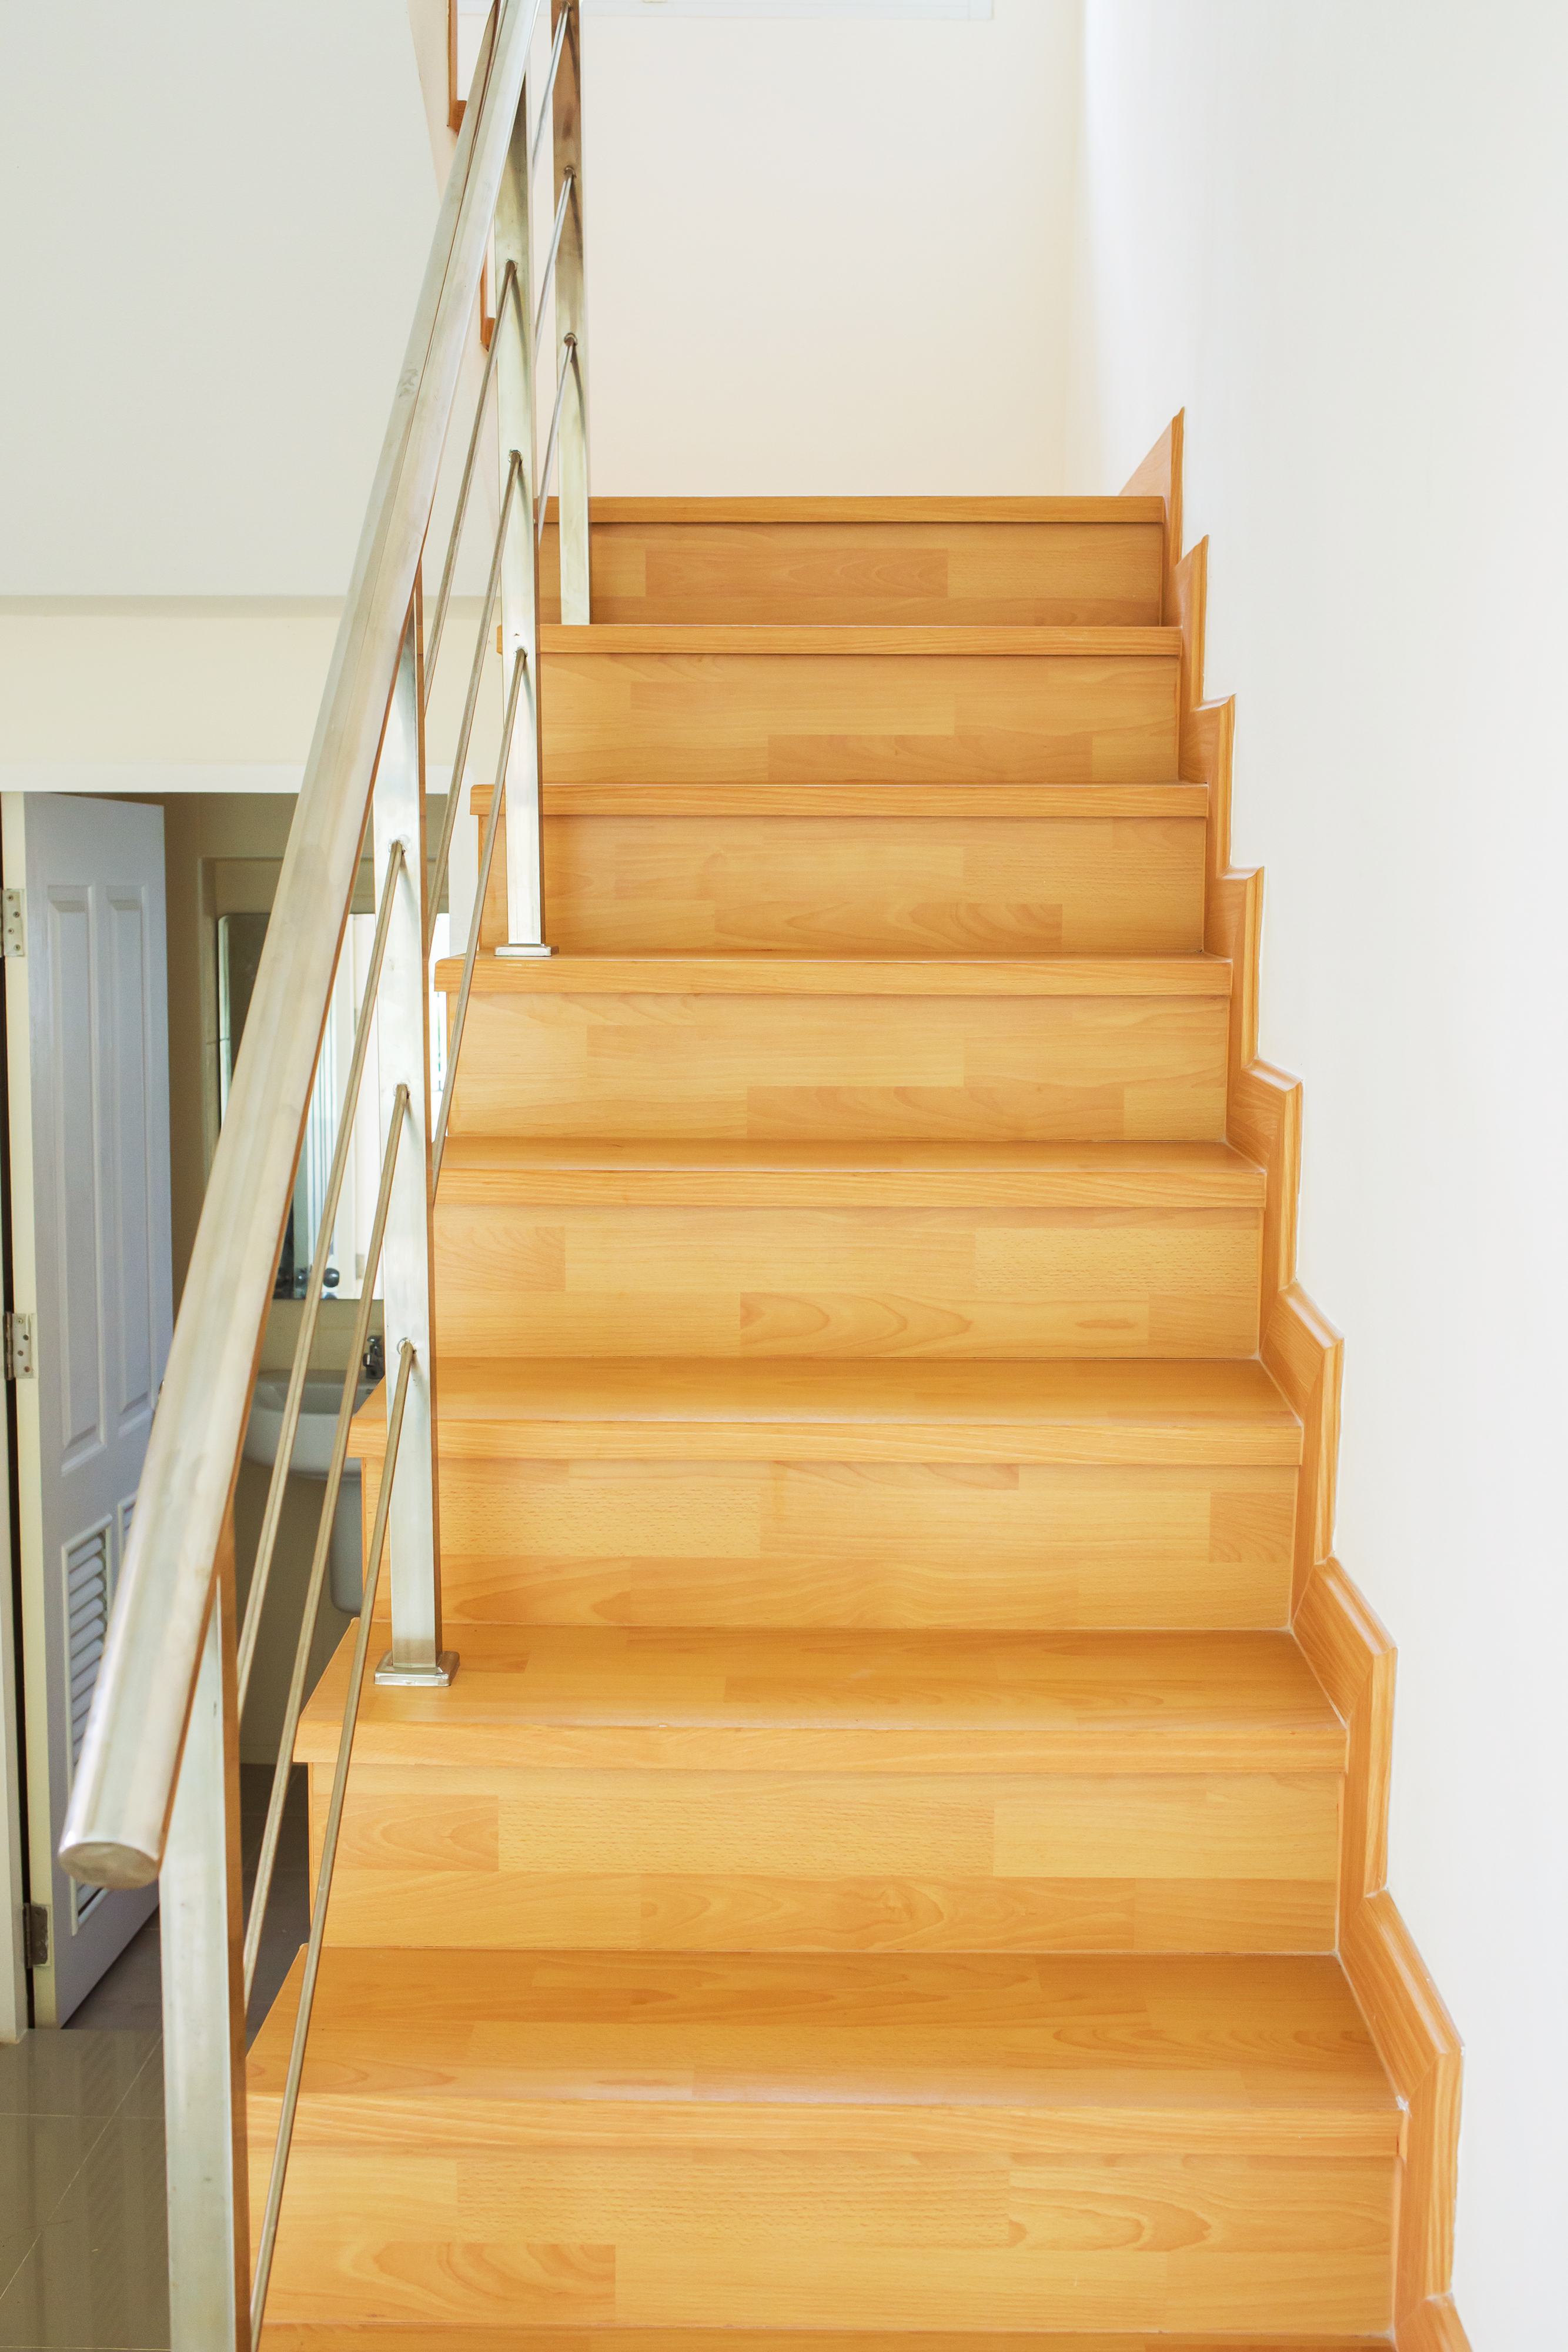 Installing wood flooring on a staircase  The wood flooring